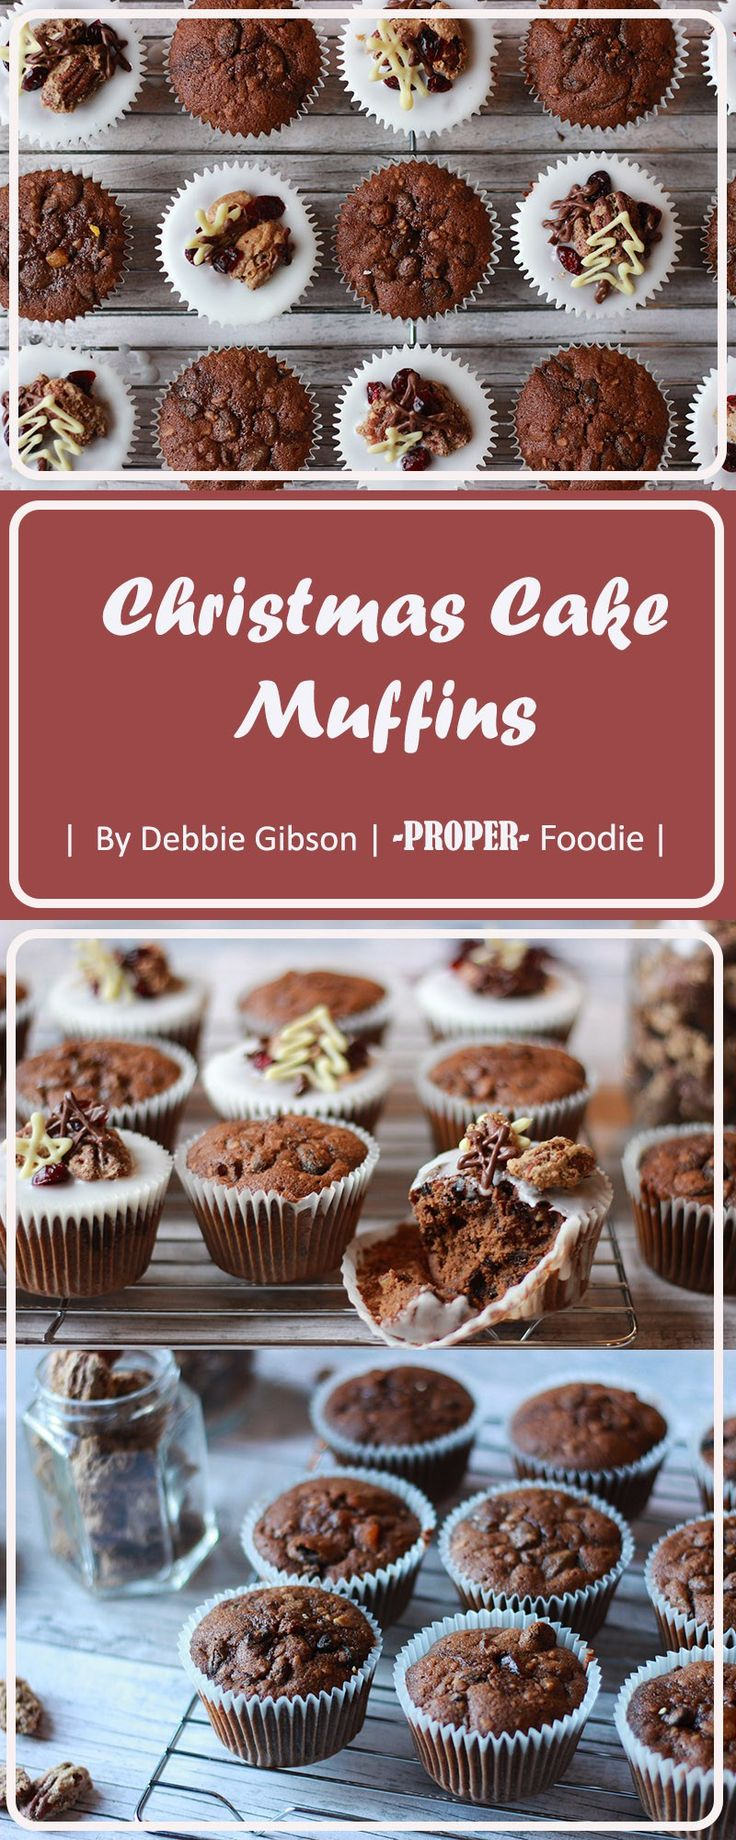 Christmas cake muffins topped with icing and homemade sugared pecans and chocolate stars | ProperFoodie